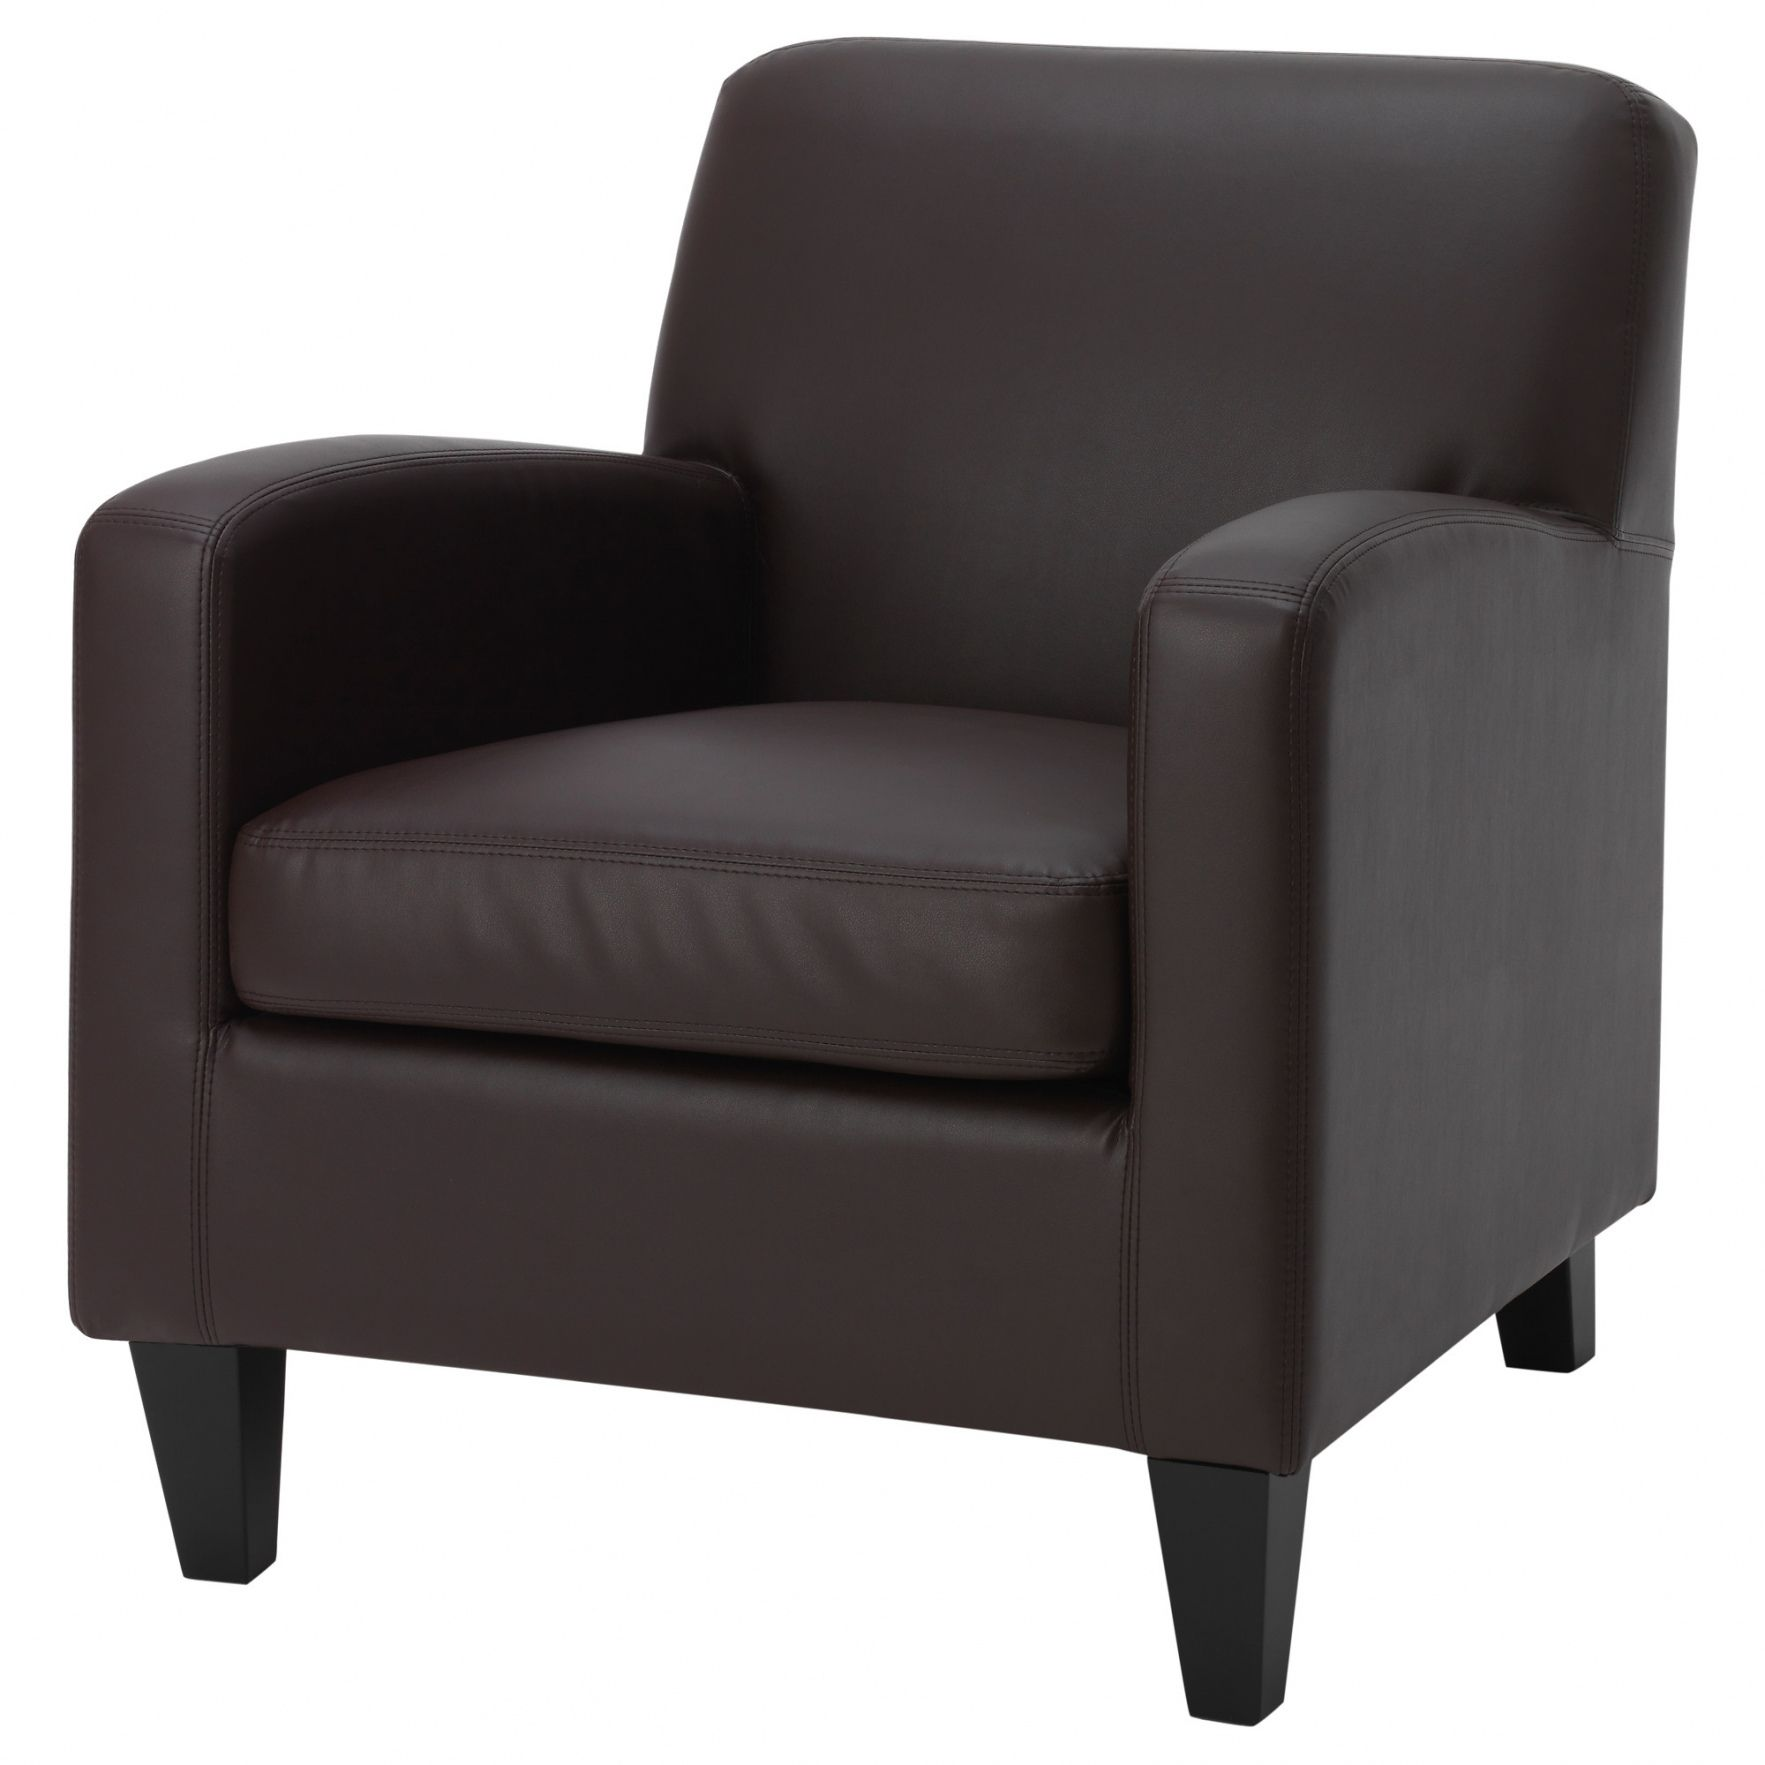 55+ Leather Club Chairs Ikea Best Paint for Wood